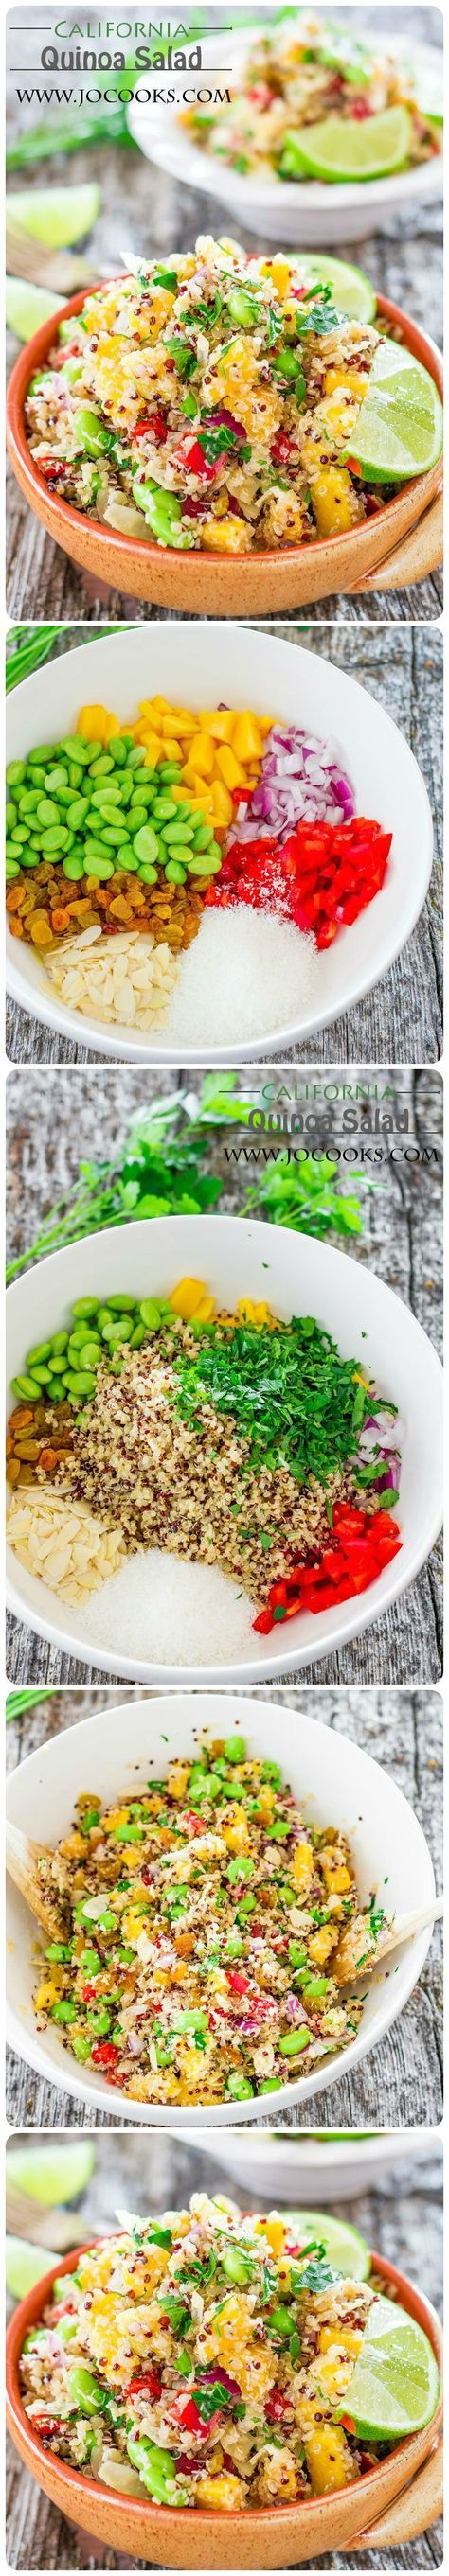 California Quinoa Salad – a Whole Foods Market copycat recipe, full of delicious ingredients and super good for you. Simply Delish!